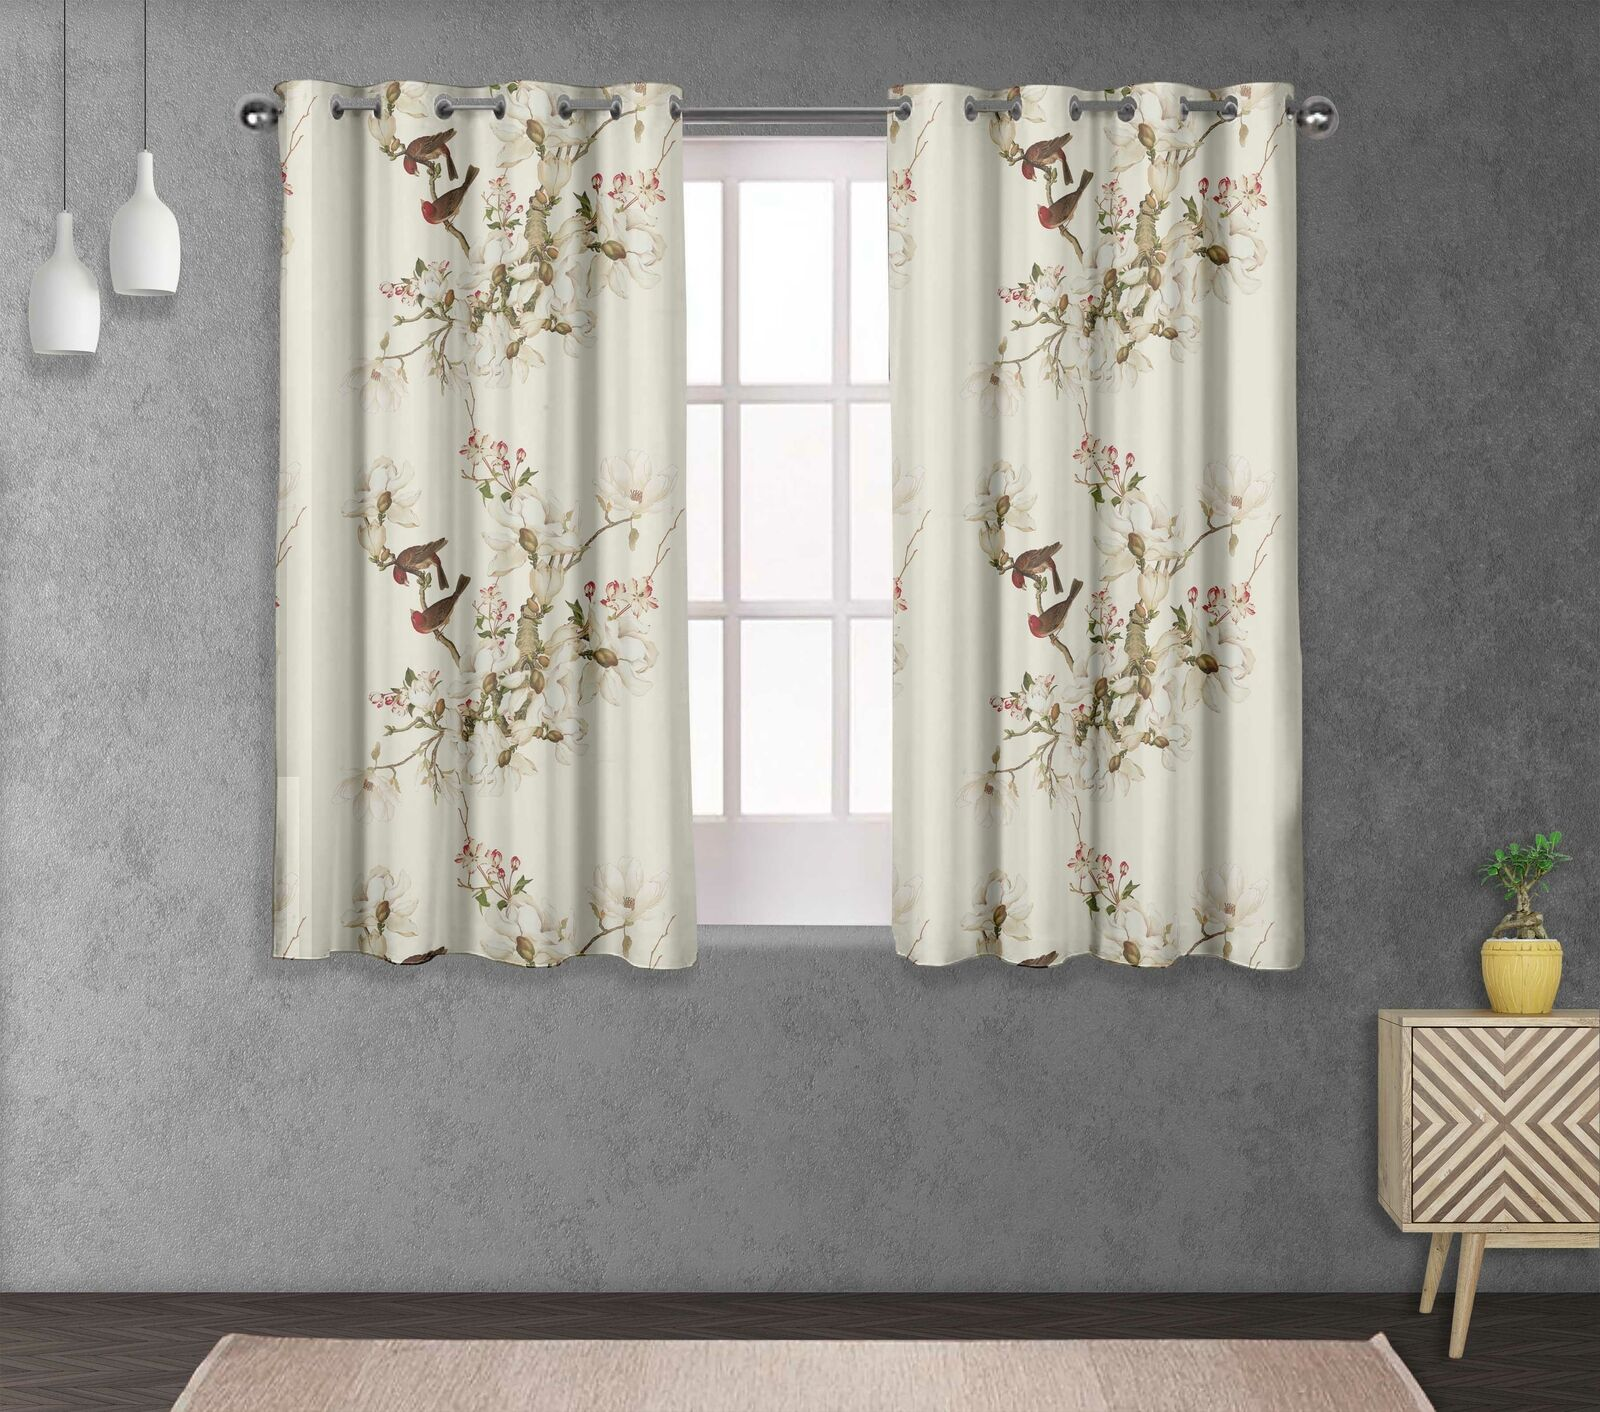 S4sassy Bird & Magnolia Bed Room Divider short & long Curtain Panel -FL-121A